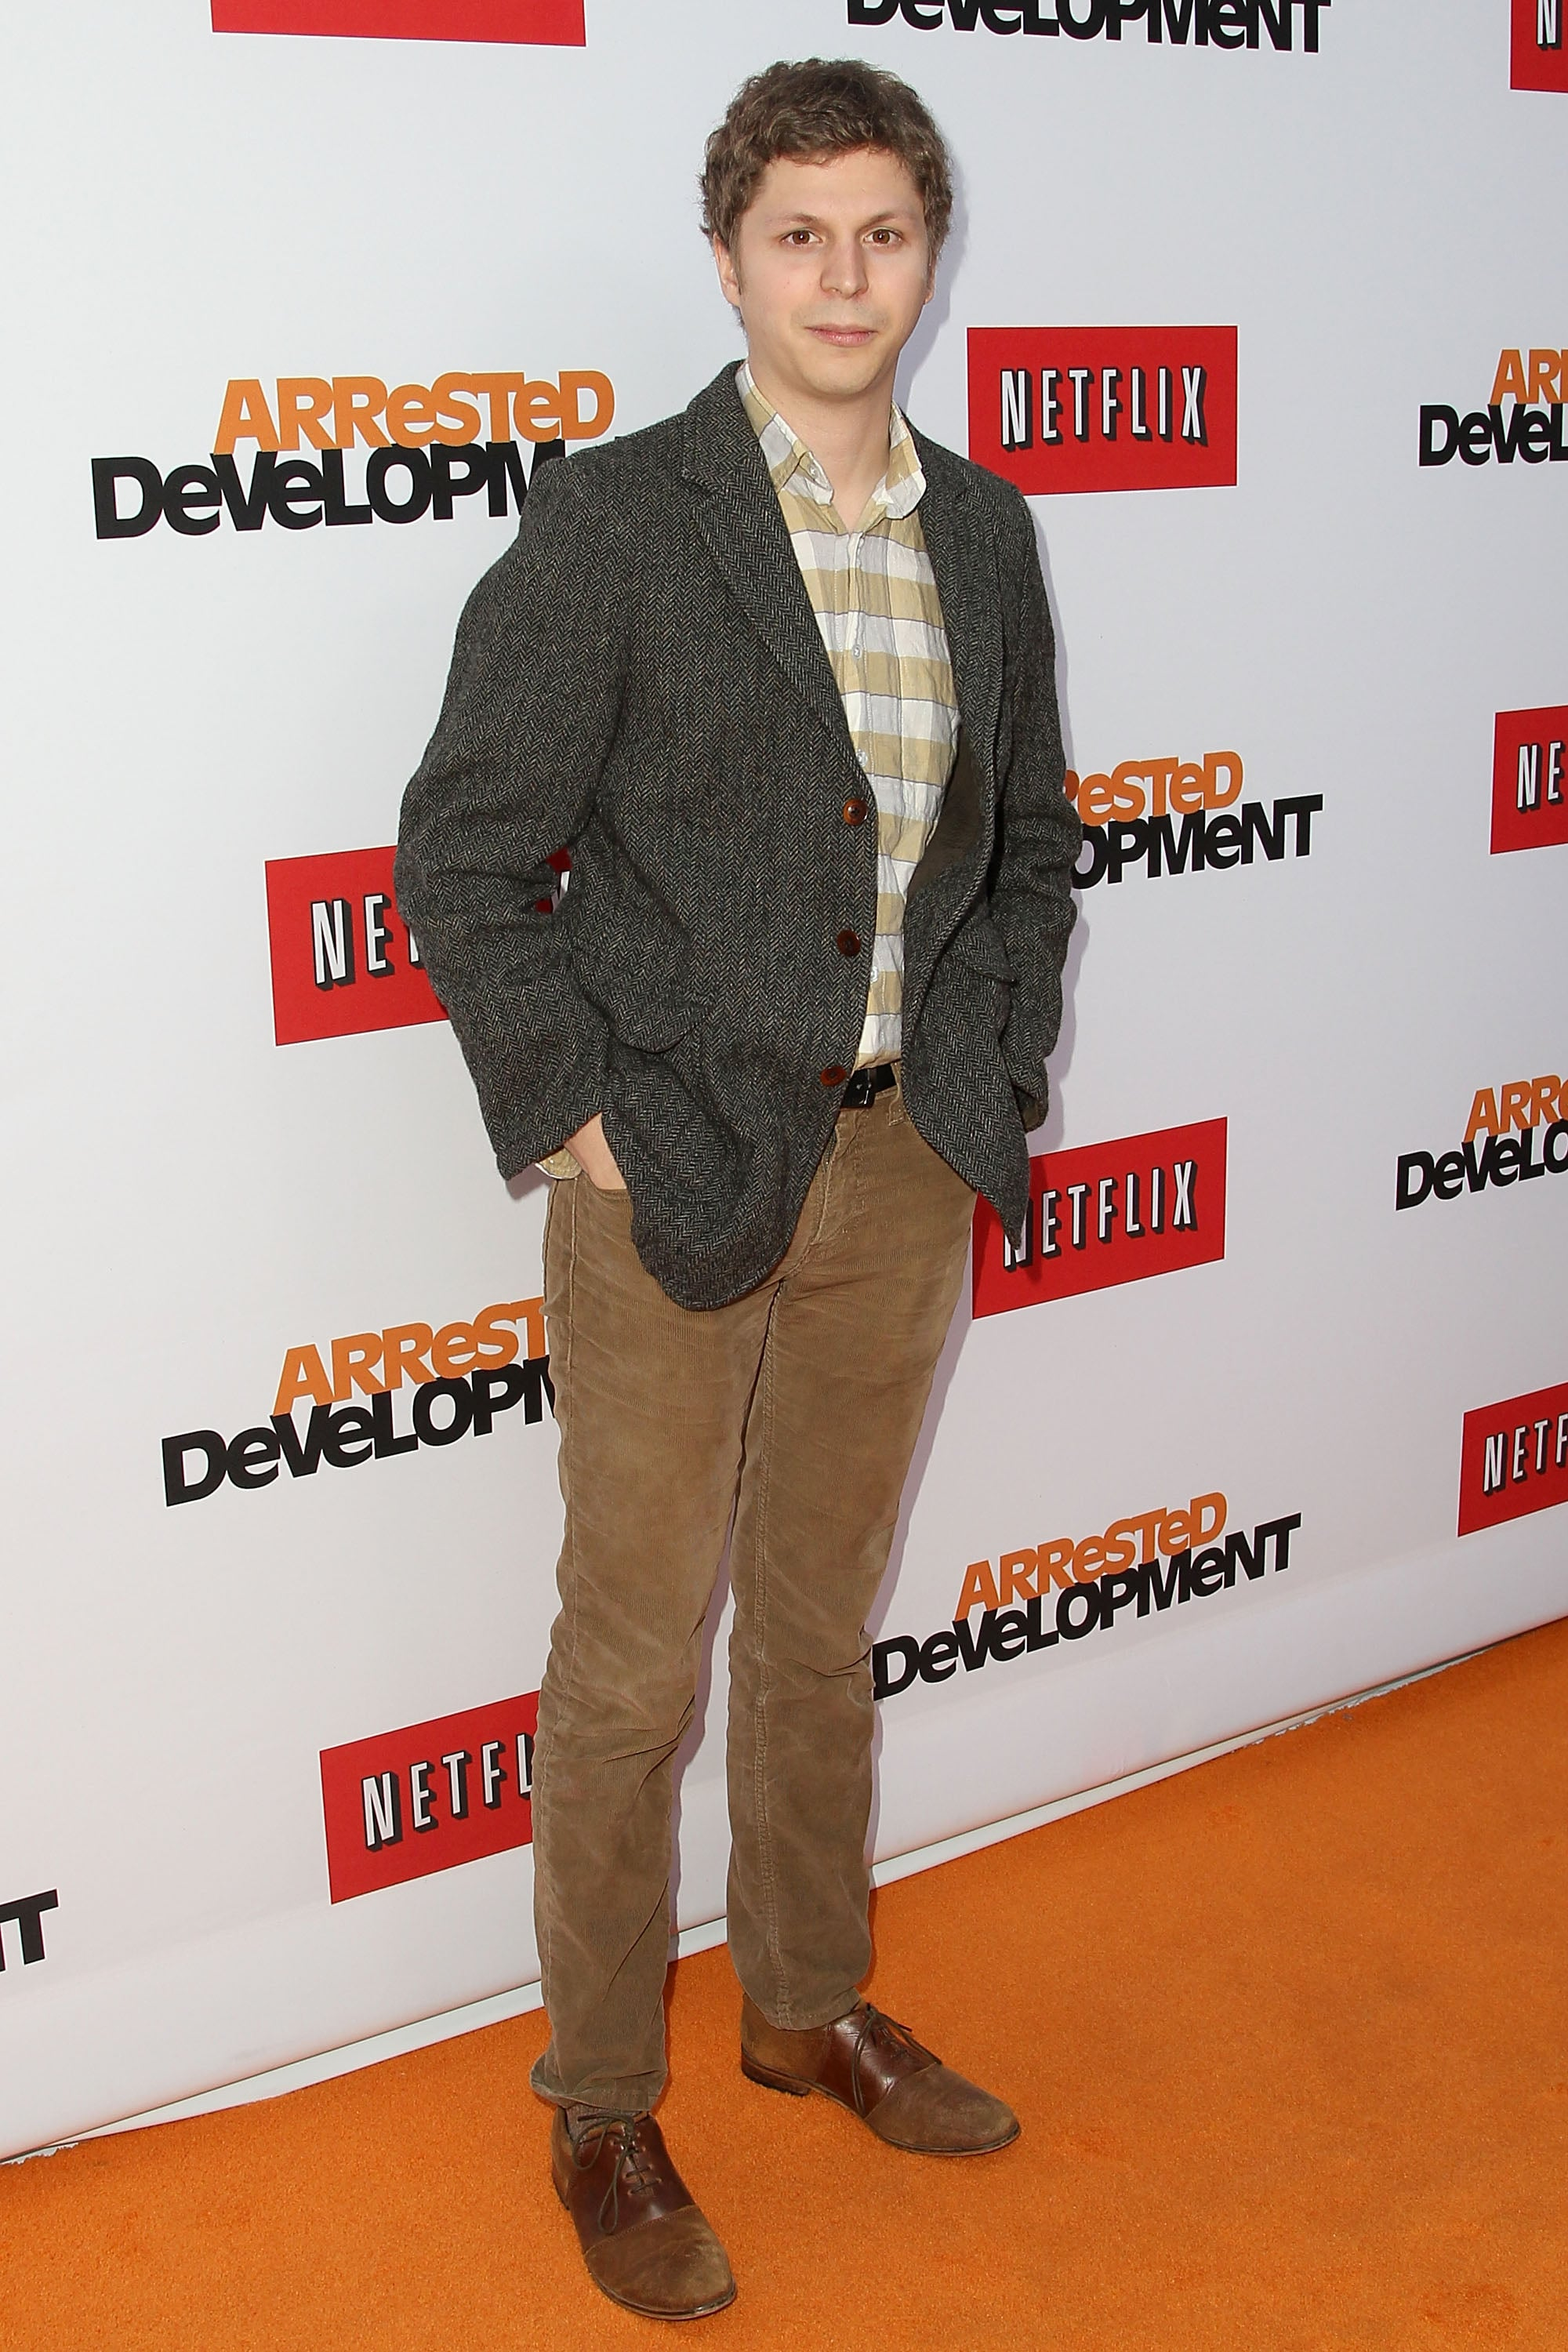 Michael Cera kept it simple at the premiere.